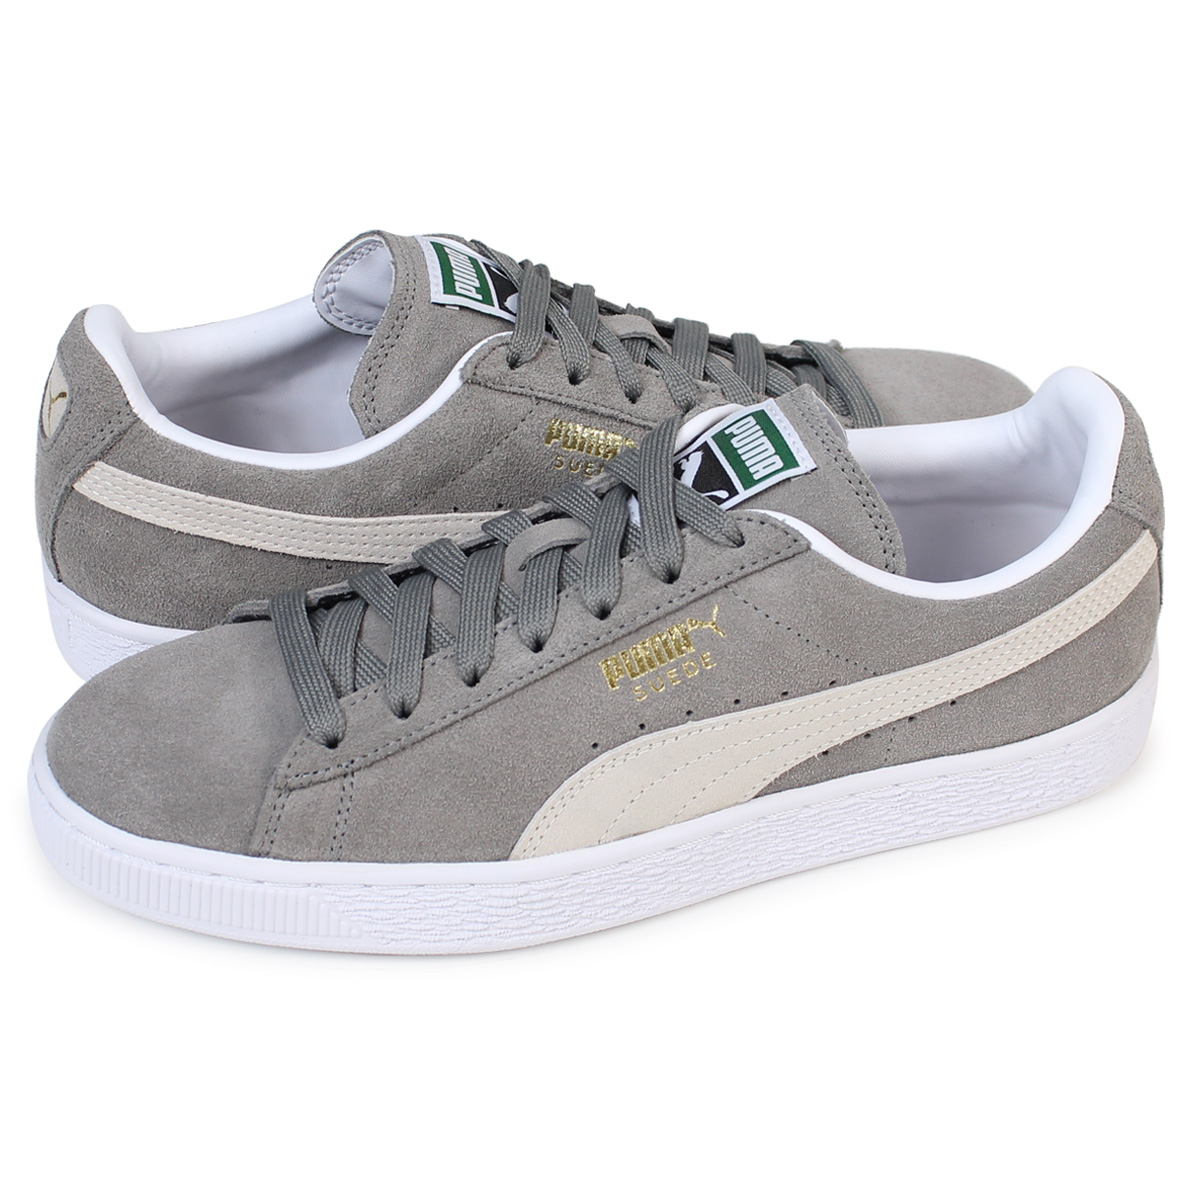 new concept de601 44497 PUMA SUEDE CLASSIC + Puma suede classical music sneakers 352,634-66 men's  lady's shoes gray [load planned Shinnyu load in reservation product 12/14  ...